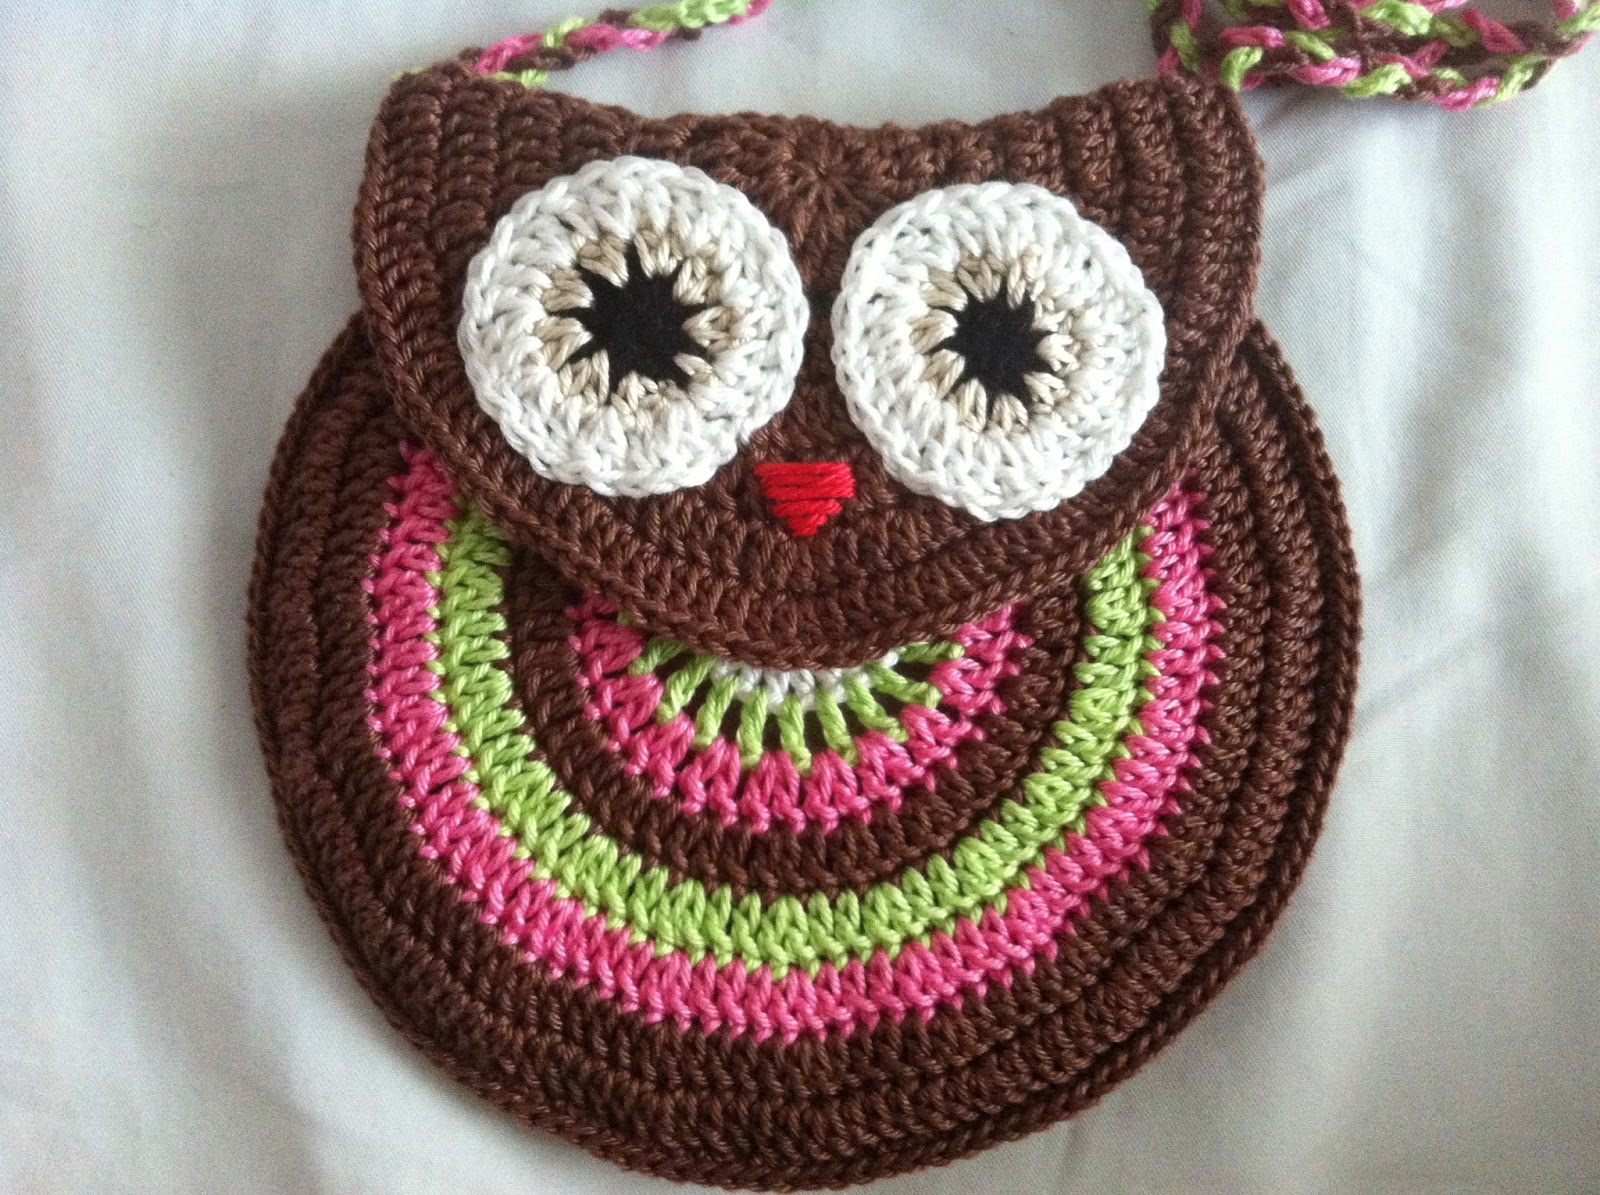 Crochet Owl Bag Pattern Free : 12 free crochet bag patterns Car Pictures